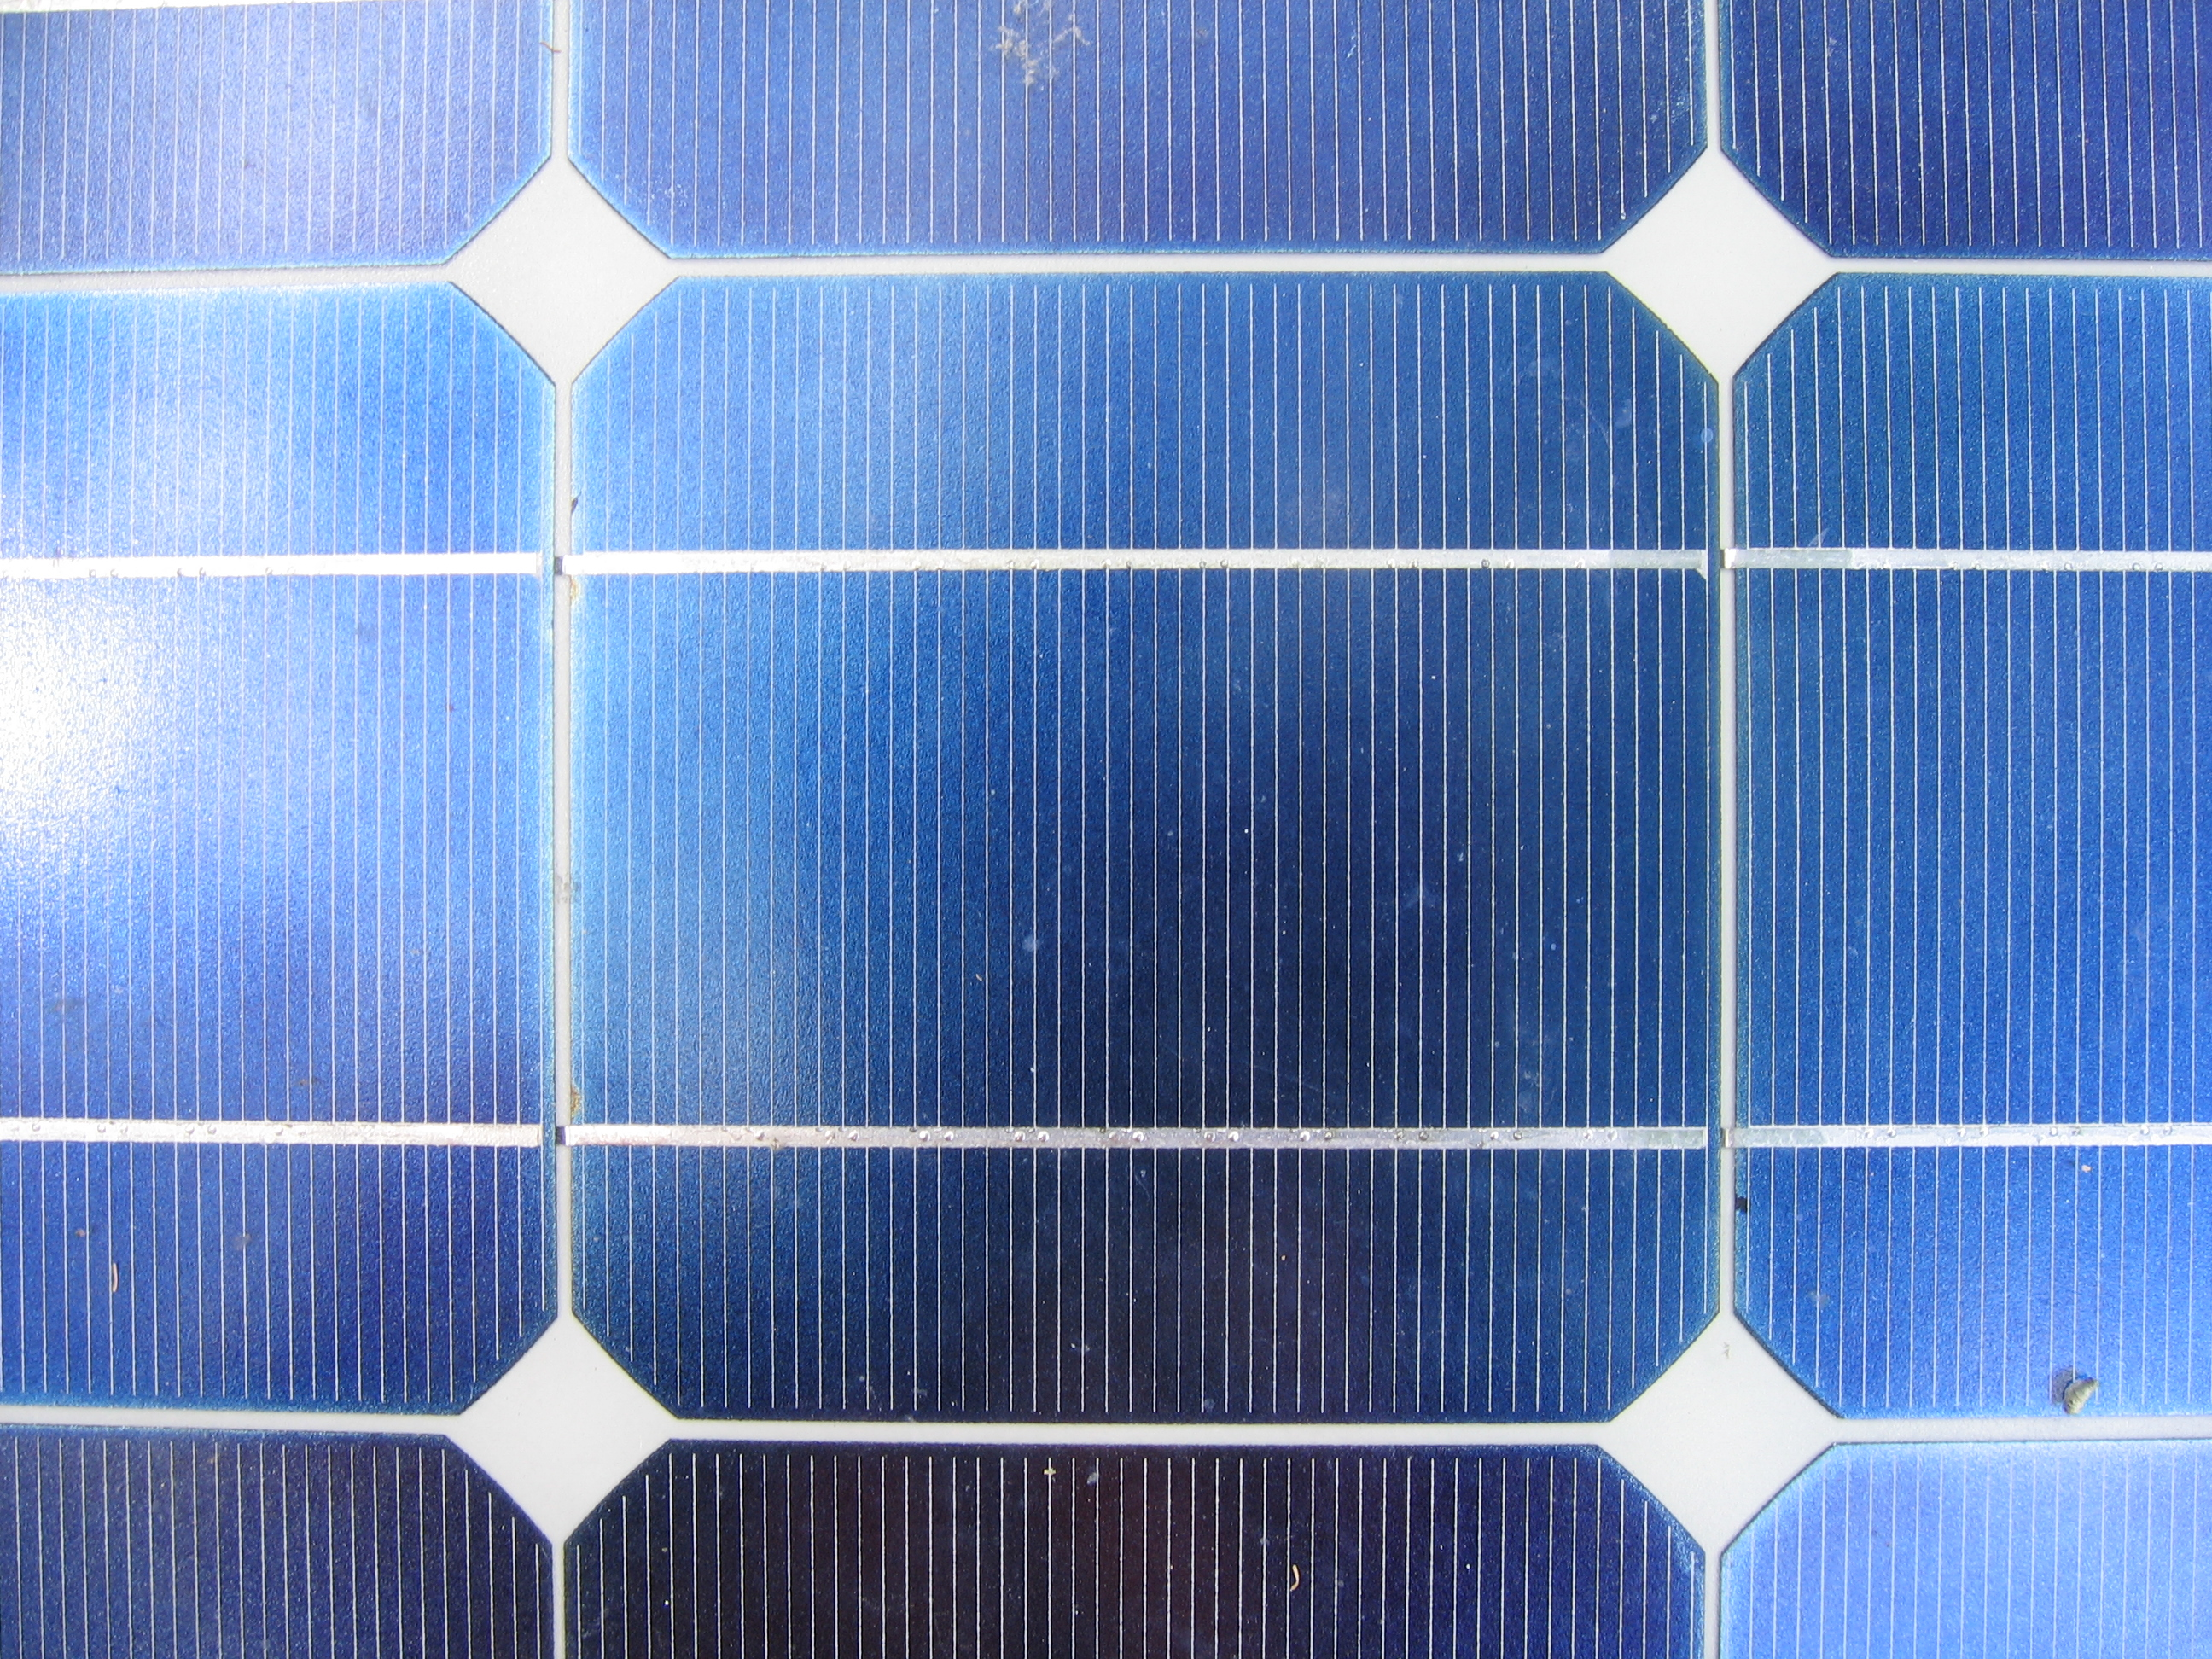 File:Solar panels closeup.jpg - Wikimedia Commons